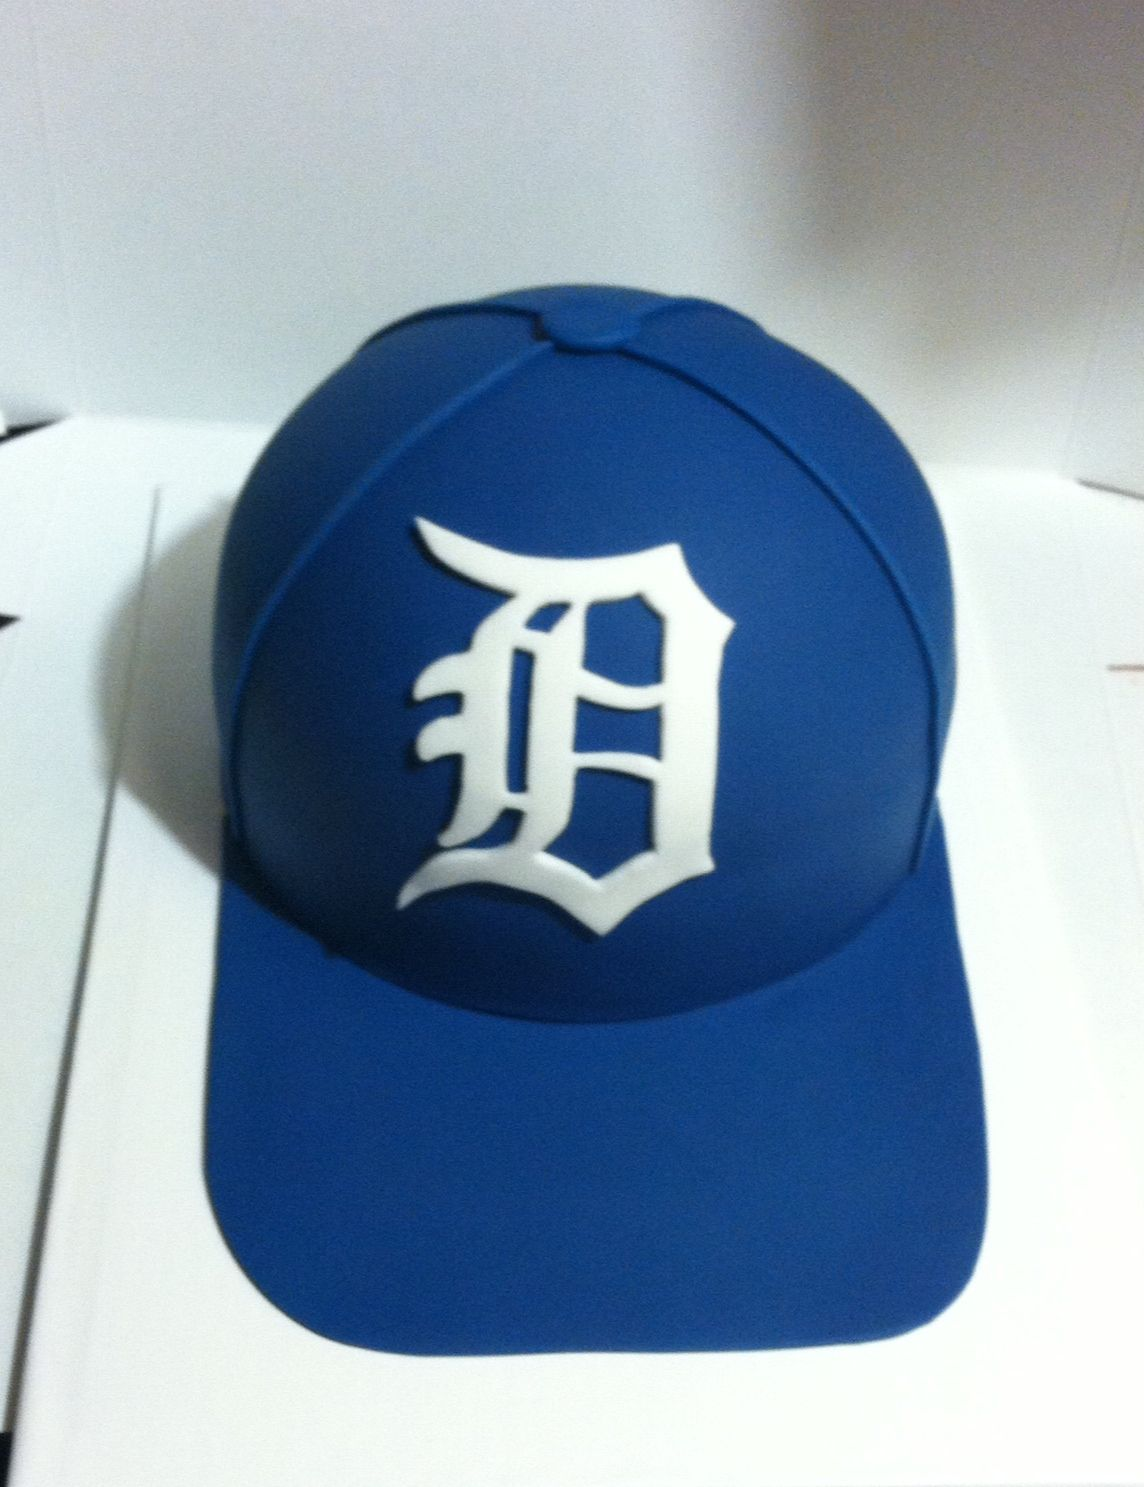 Detroit Tigers Baseball Cap For Baby - Signed by Seth Gold bet356.com handbook v2.0 - American ...